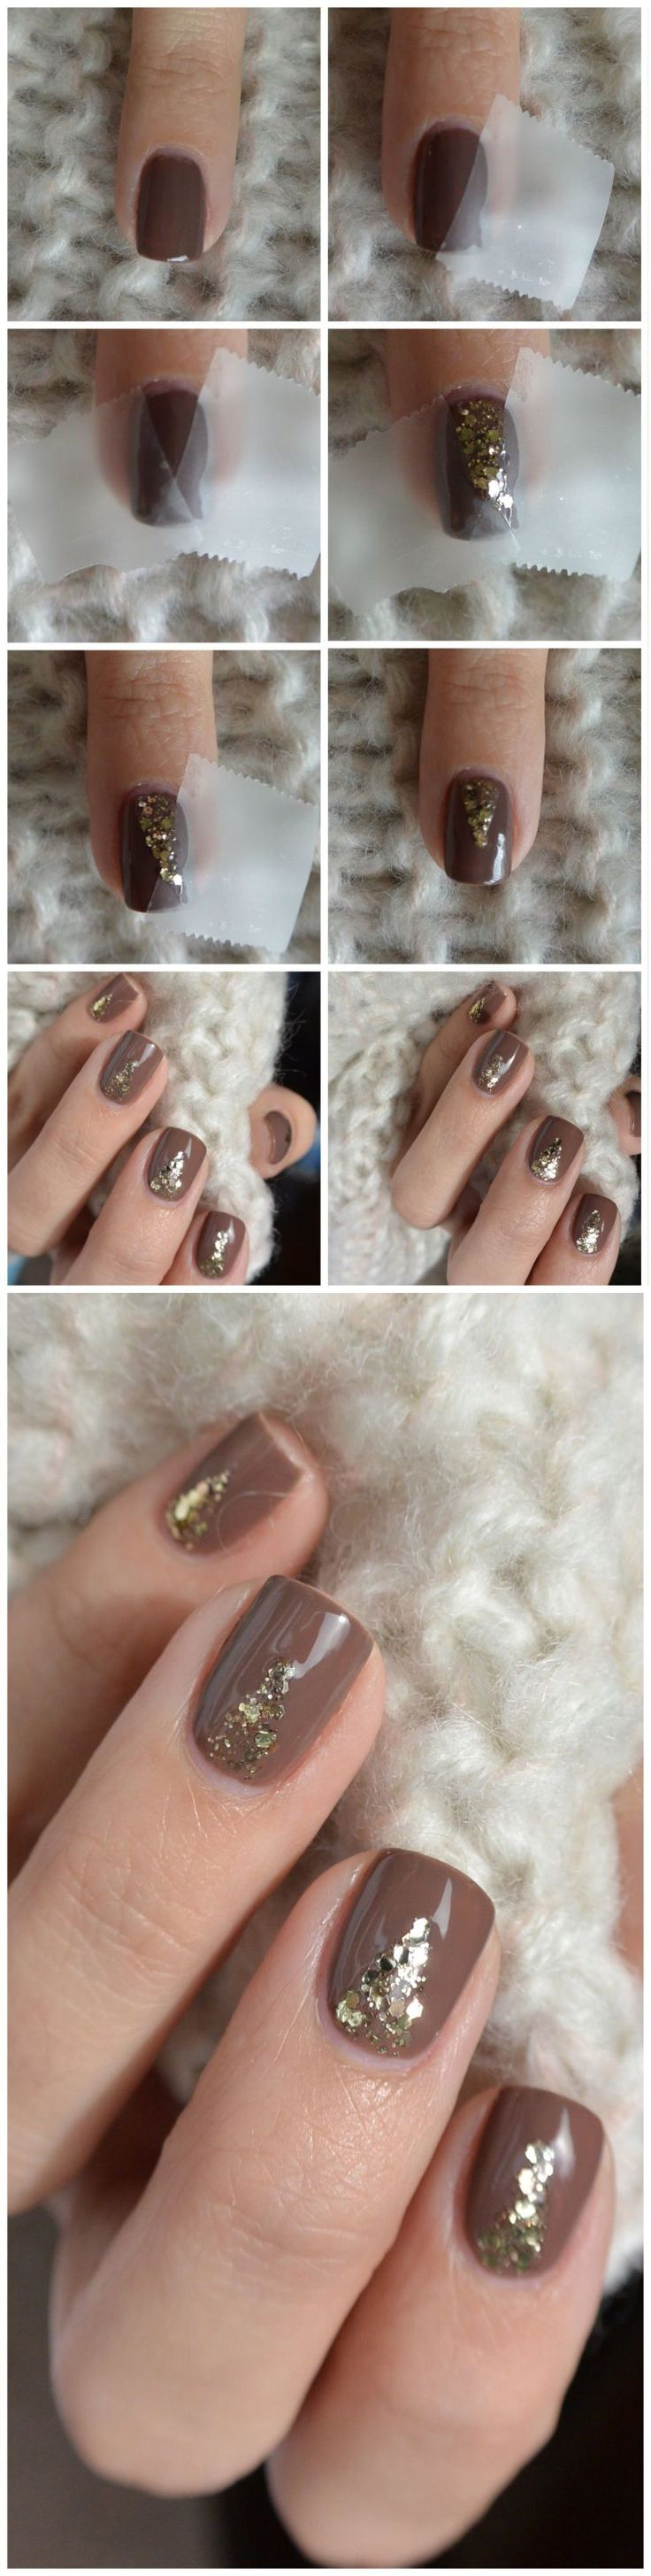 The perfect mani for a holiday party!